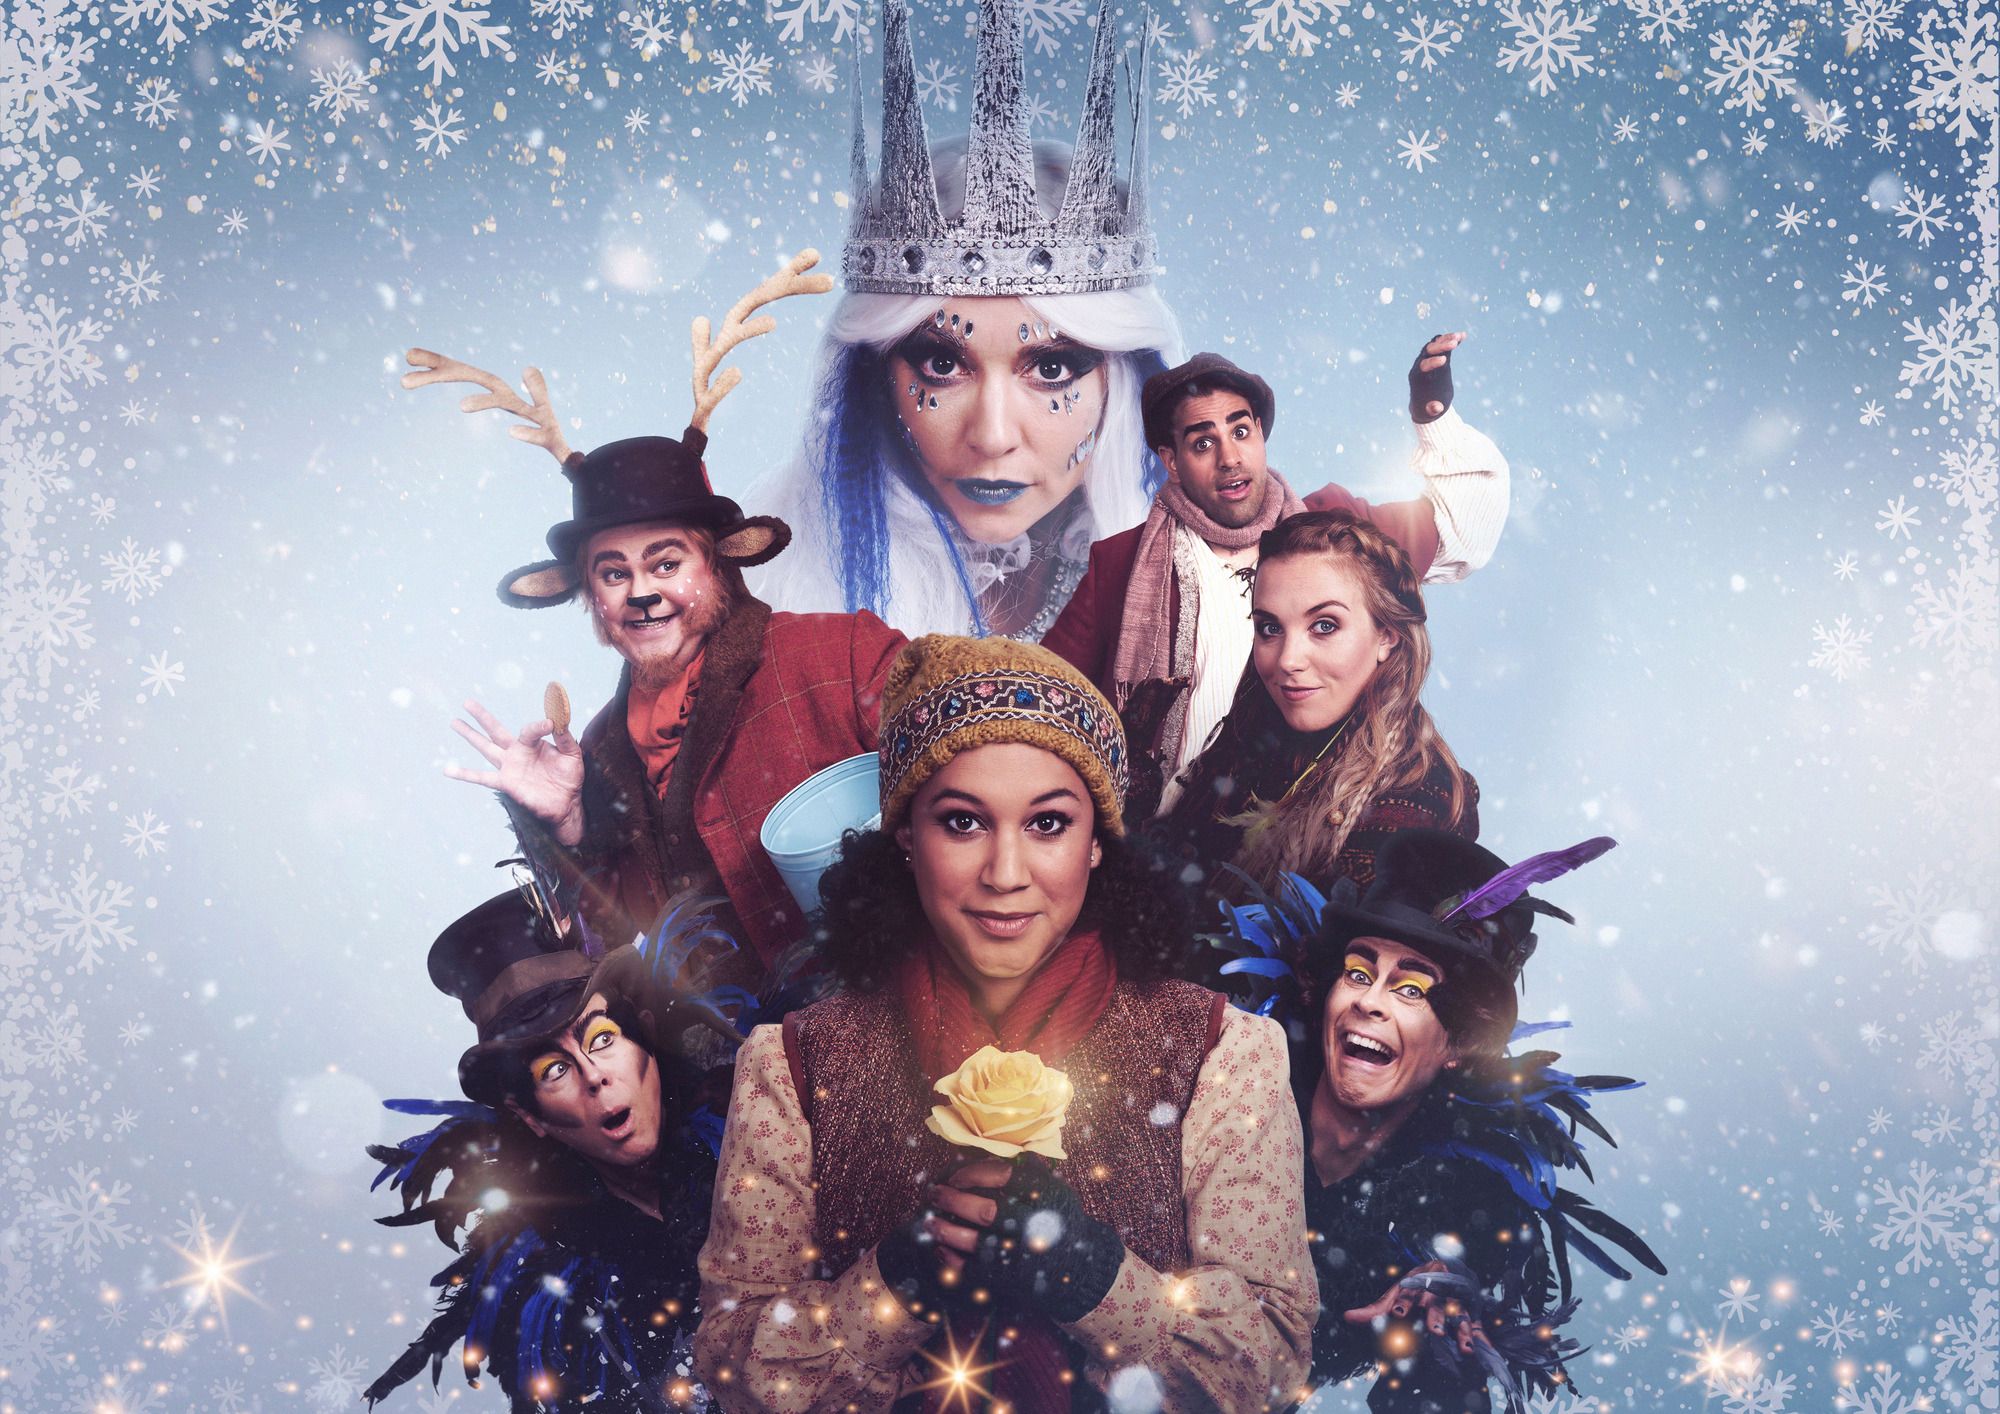 We went to see CBeebies Christmas show The Snow Queen being filmed – here's what happened